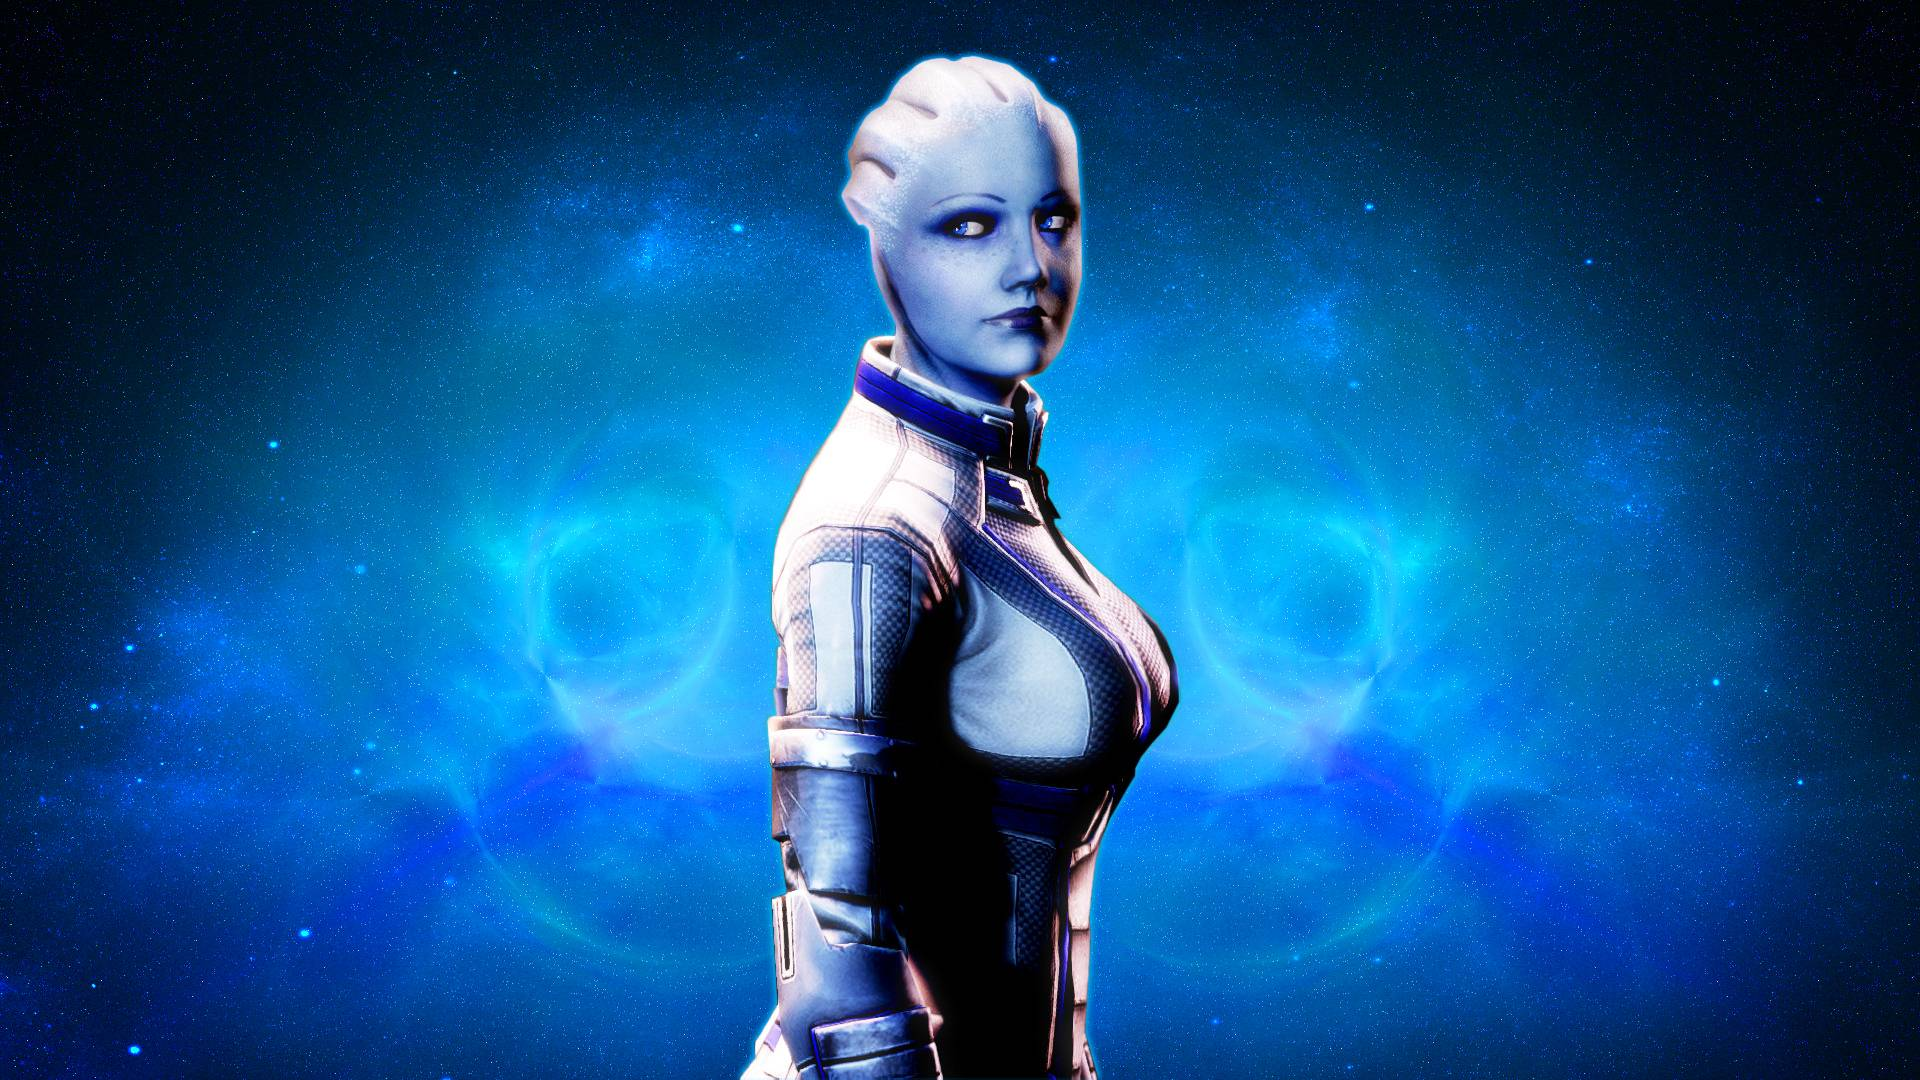 Mass Effect Liara Wallpaper Sf Wallpaper